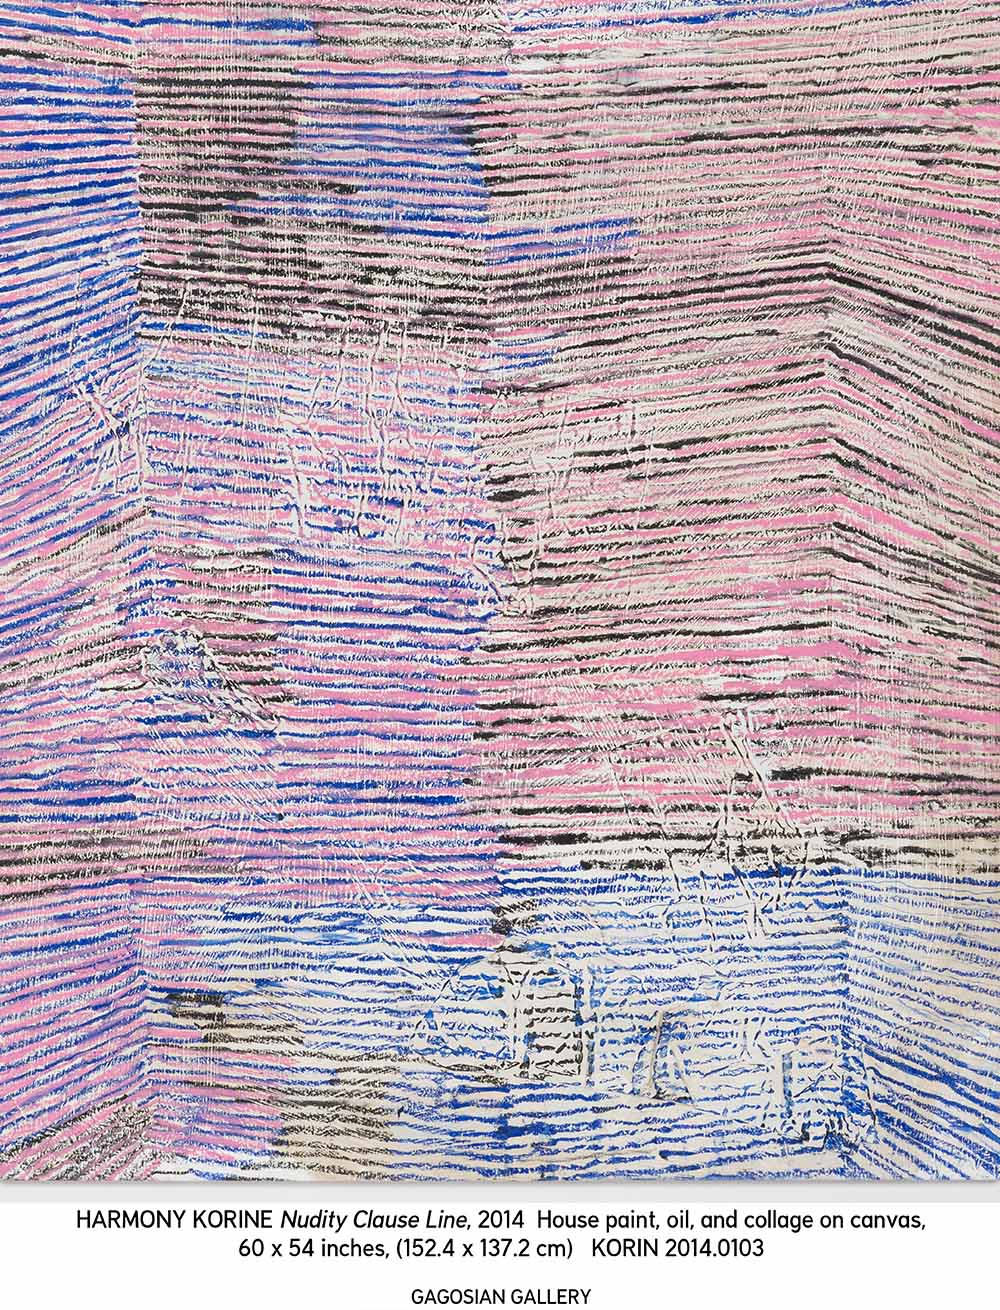 painting by harmony korine nudity clause line, 2014 as featured on the PS1  tiny